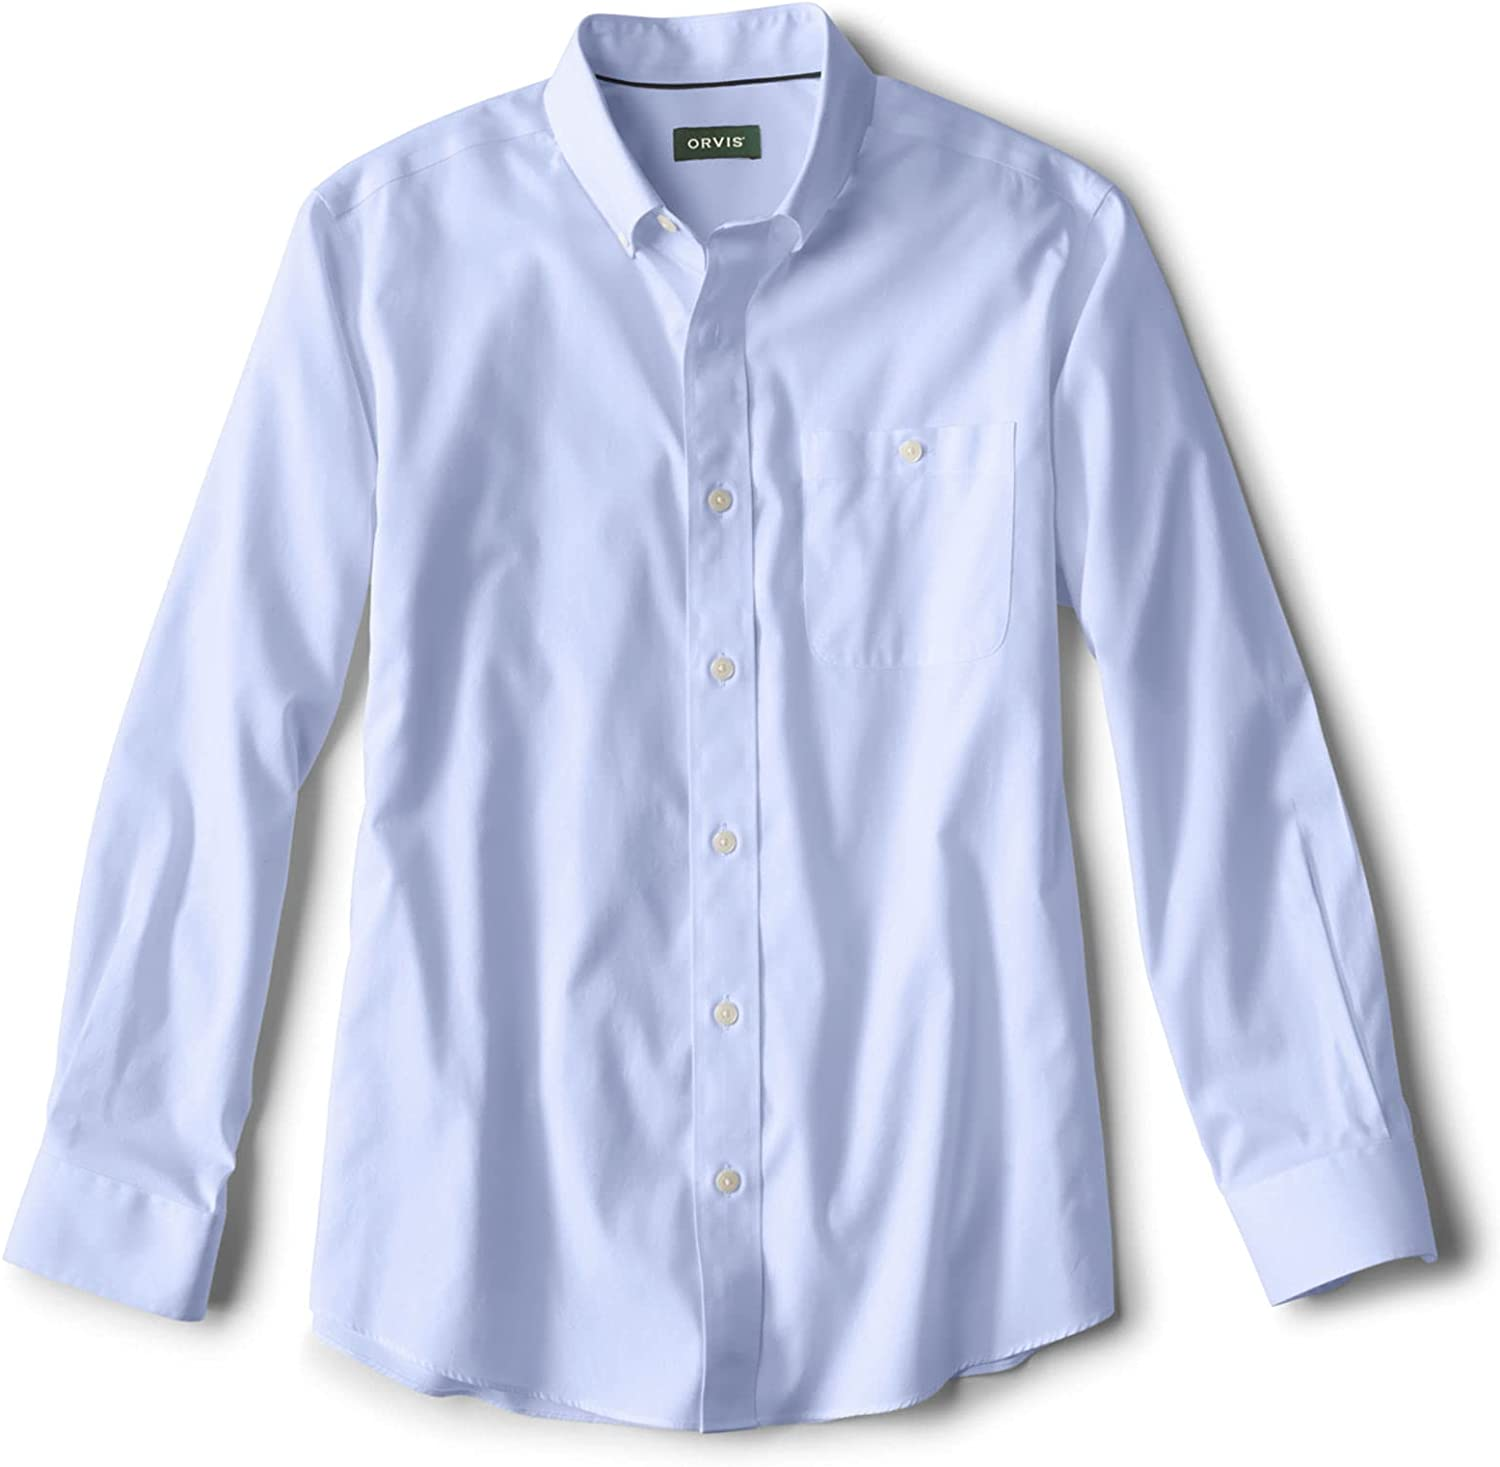 Orvis Men's Solid Pinpoint Wrinkle-Free Comfort Stretch Long-Sleeved Shirt